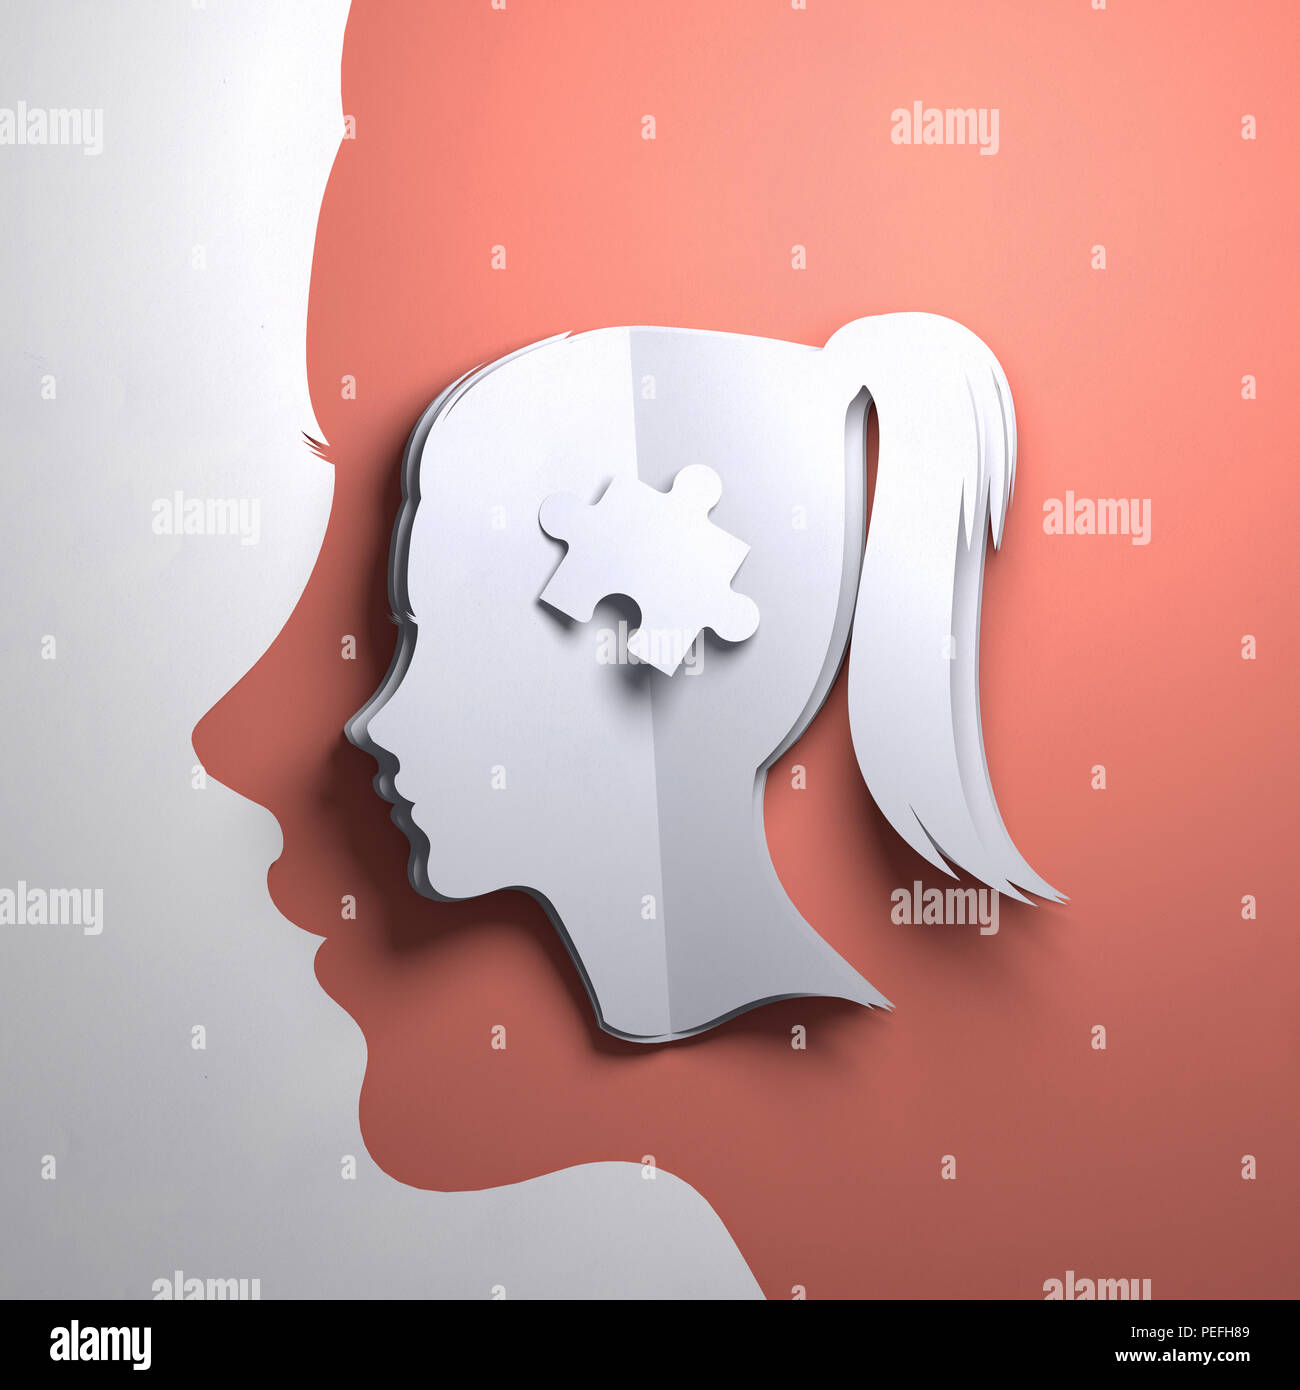 Folded Paper art origami. A silhouette of a womens head with a puzzle piece. Conceptual mindfulness 3D illustration. - Stock Image